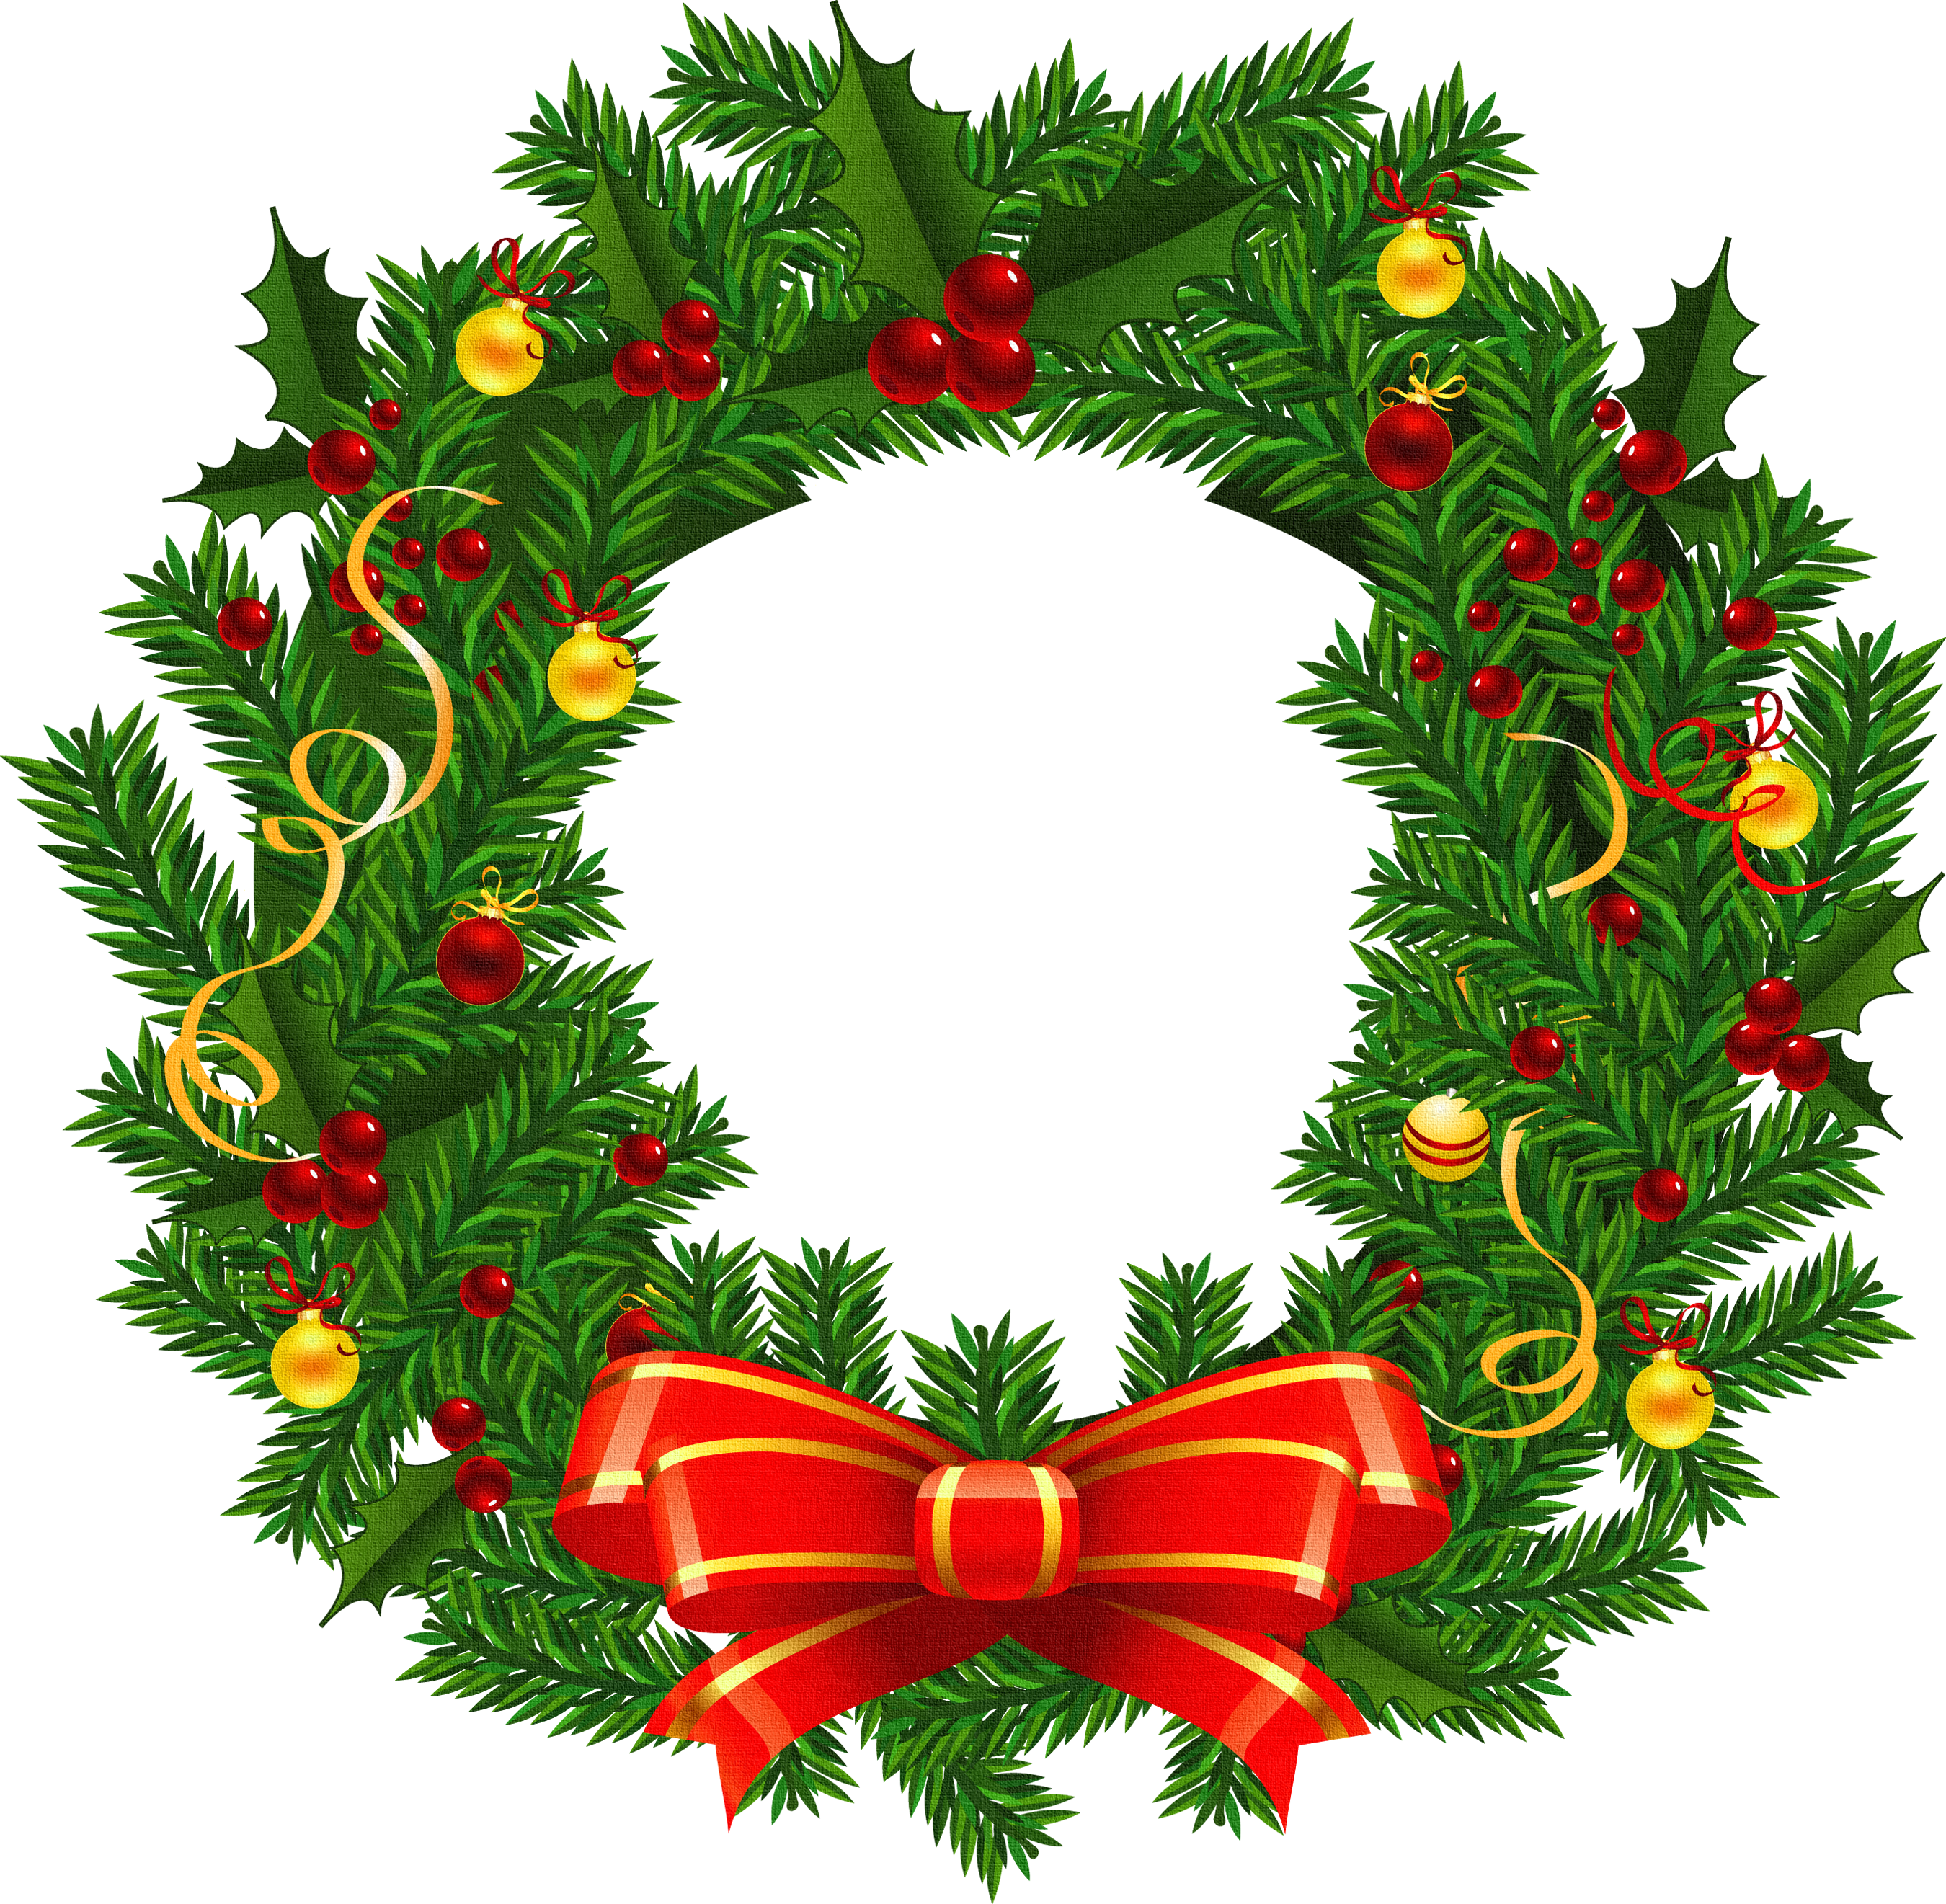 Christmas wreath clipart kid 2